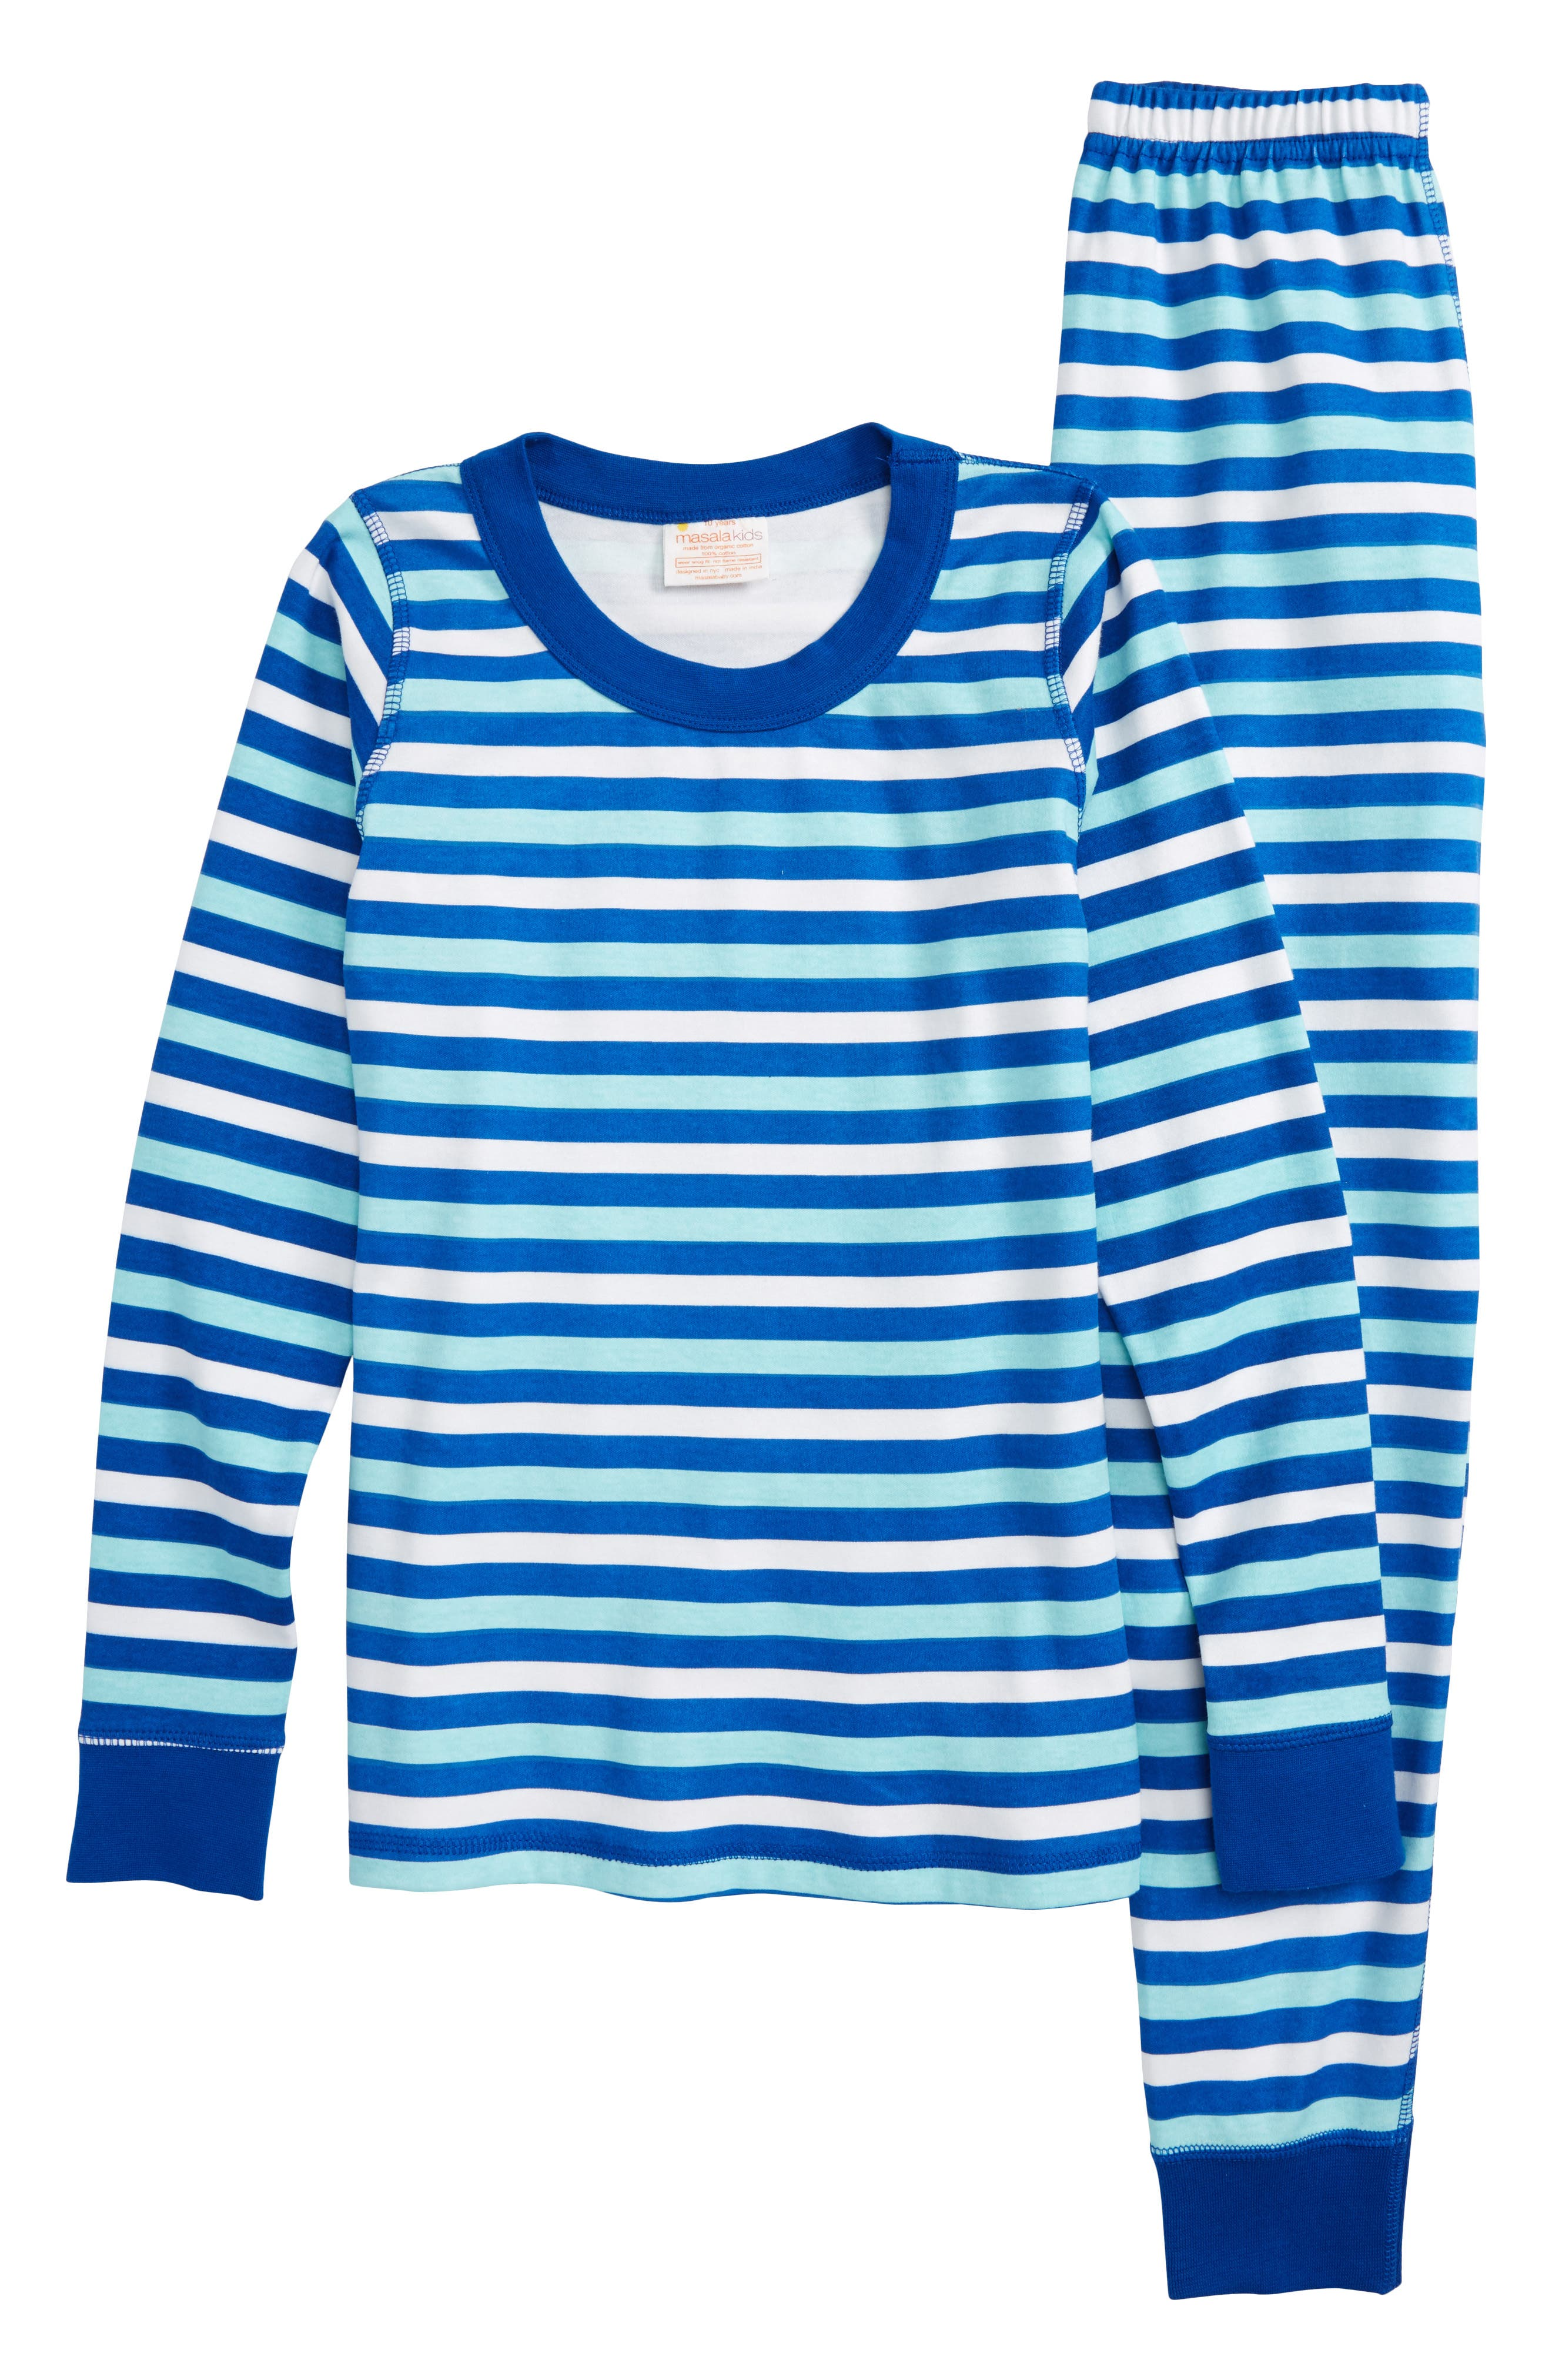 Stripe Organic Cotton Fitted Two-Piece Pajamas,                             Main thumbnail 1, color,                             Blue